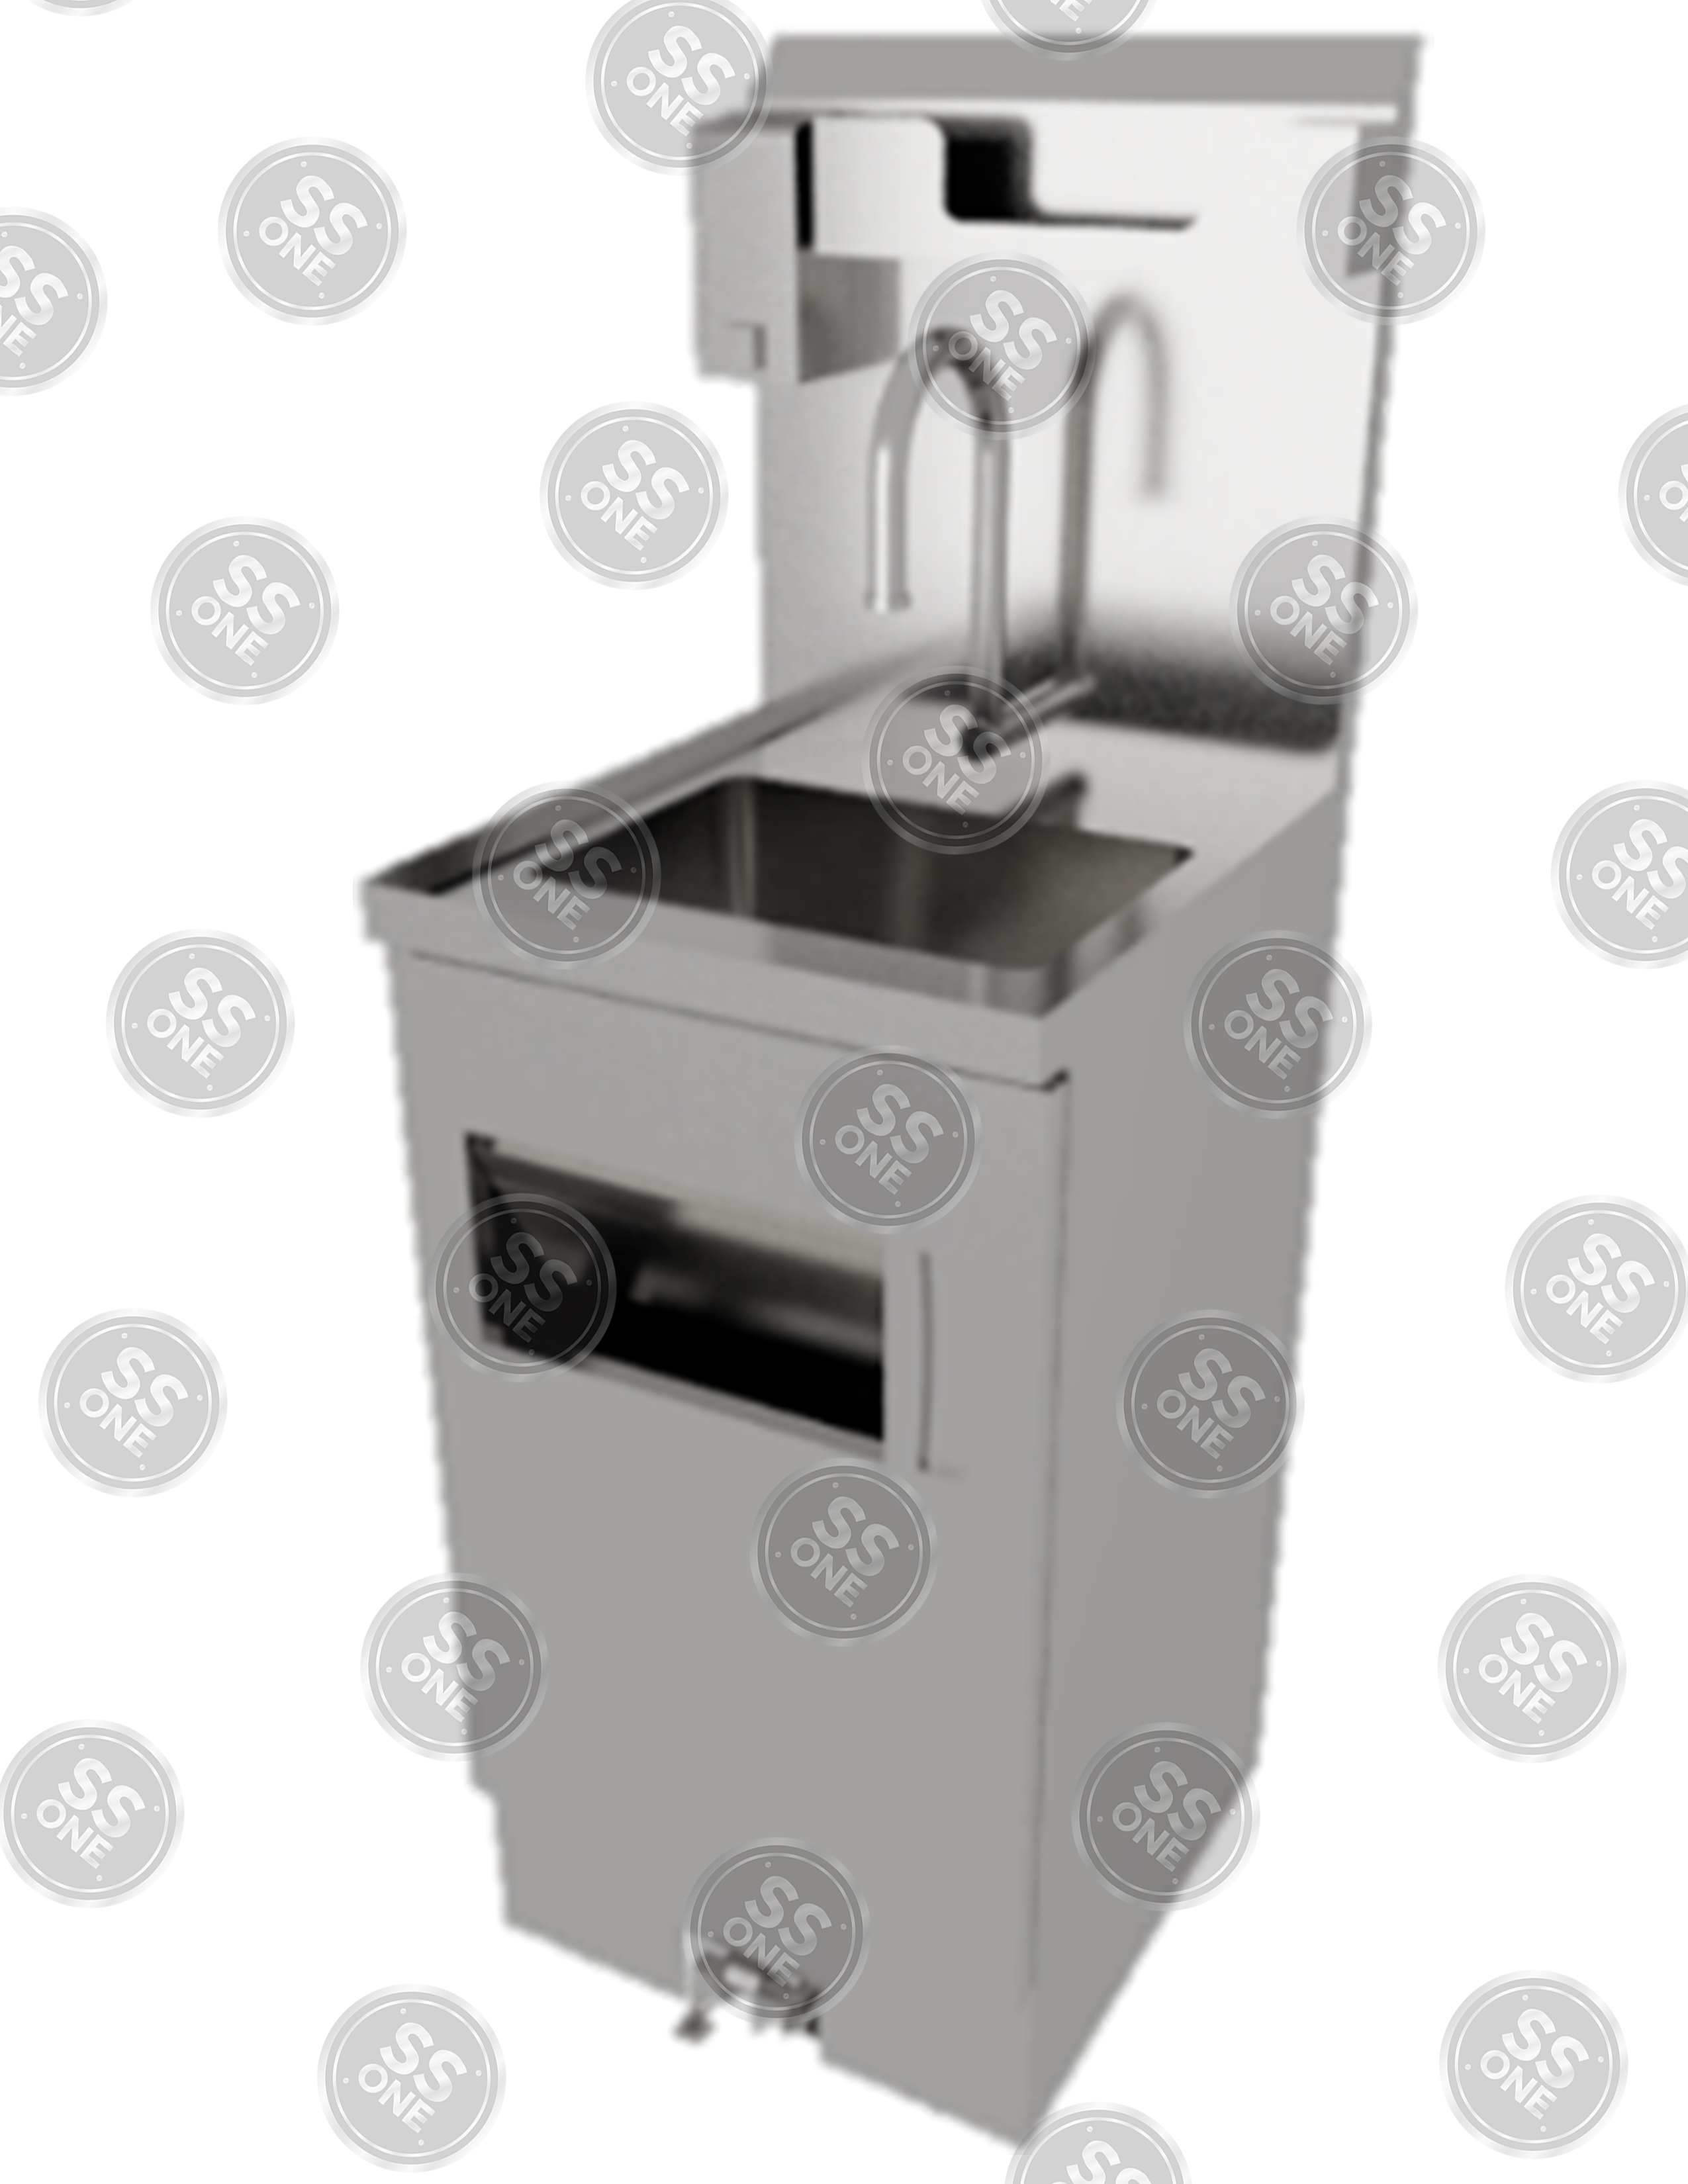 FOOT OPERATED HANDWASHING SINK (WITH SOAP AND TOWEL DISPENSER)